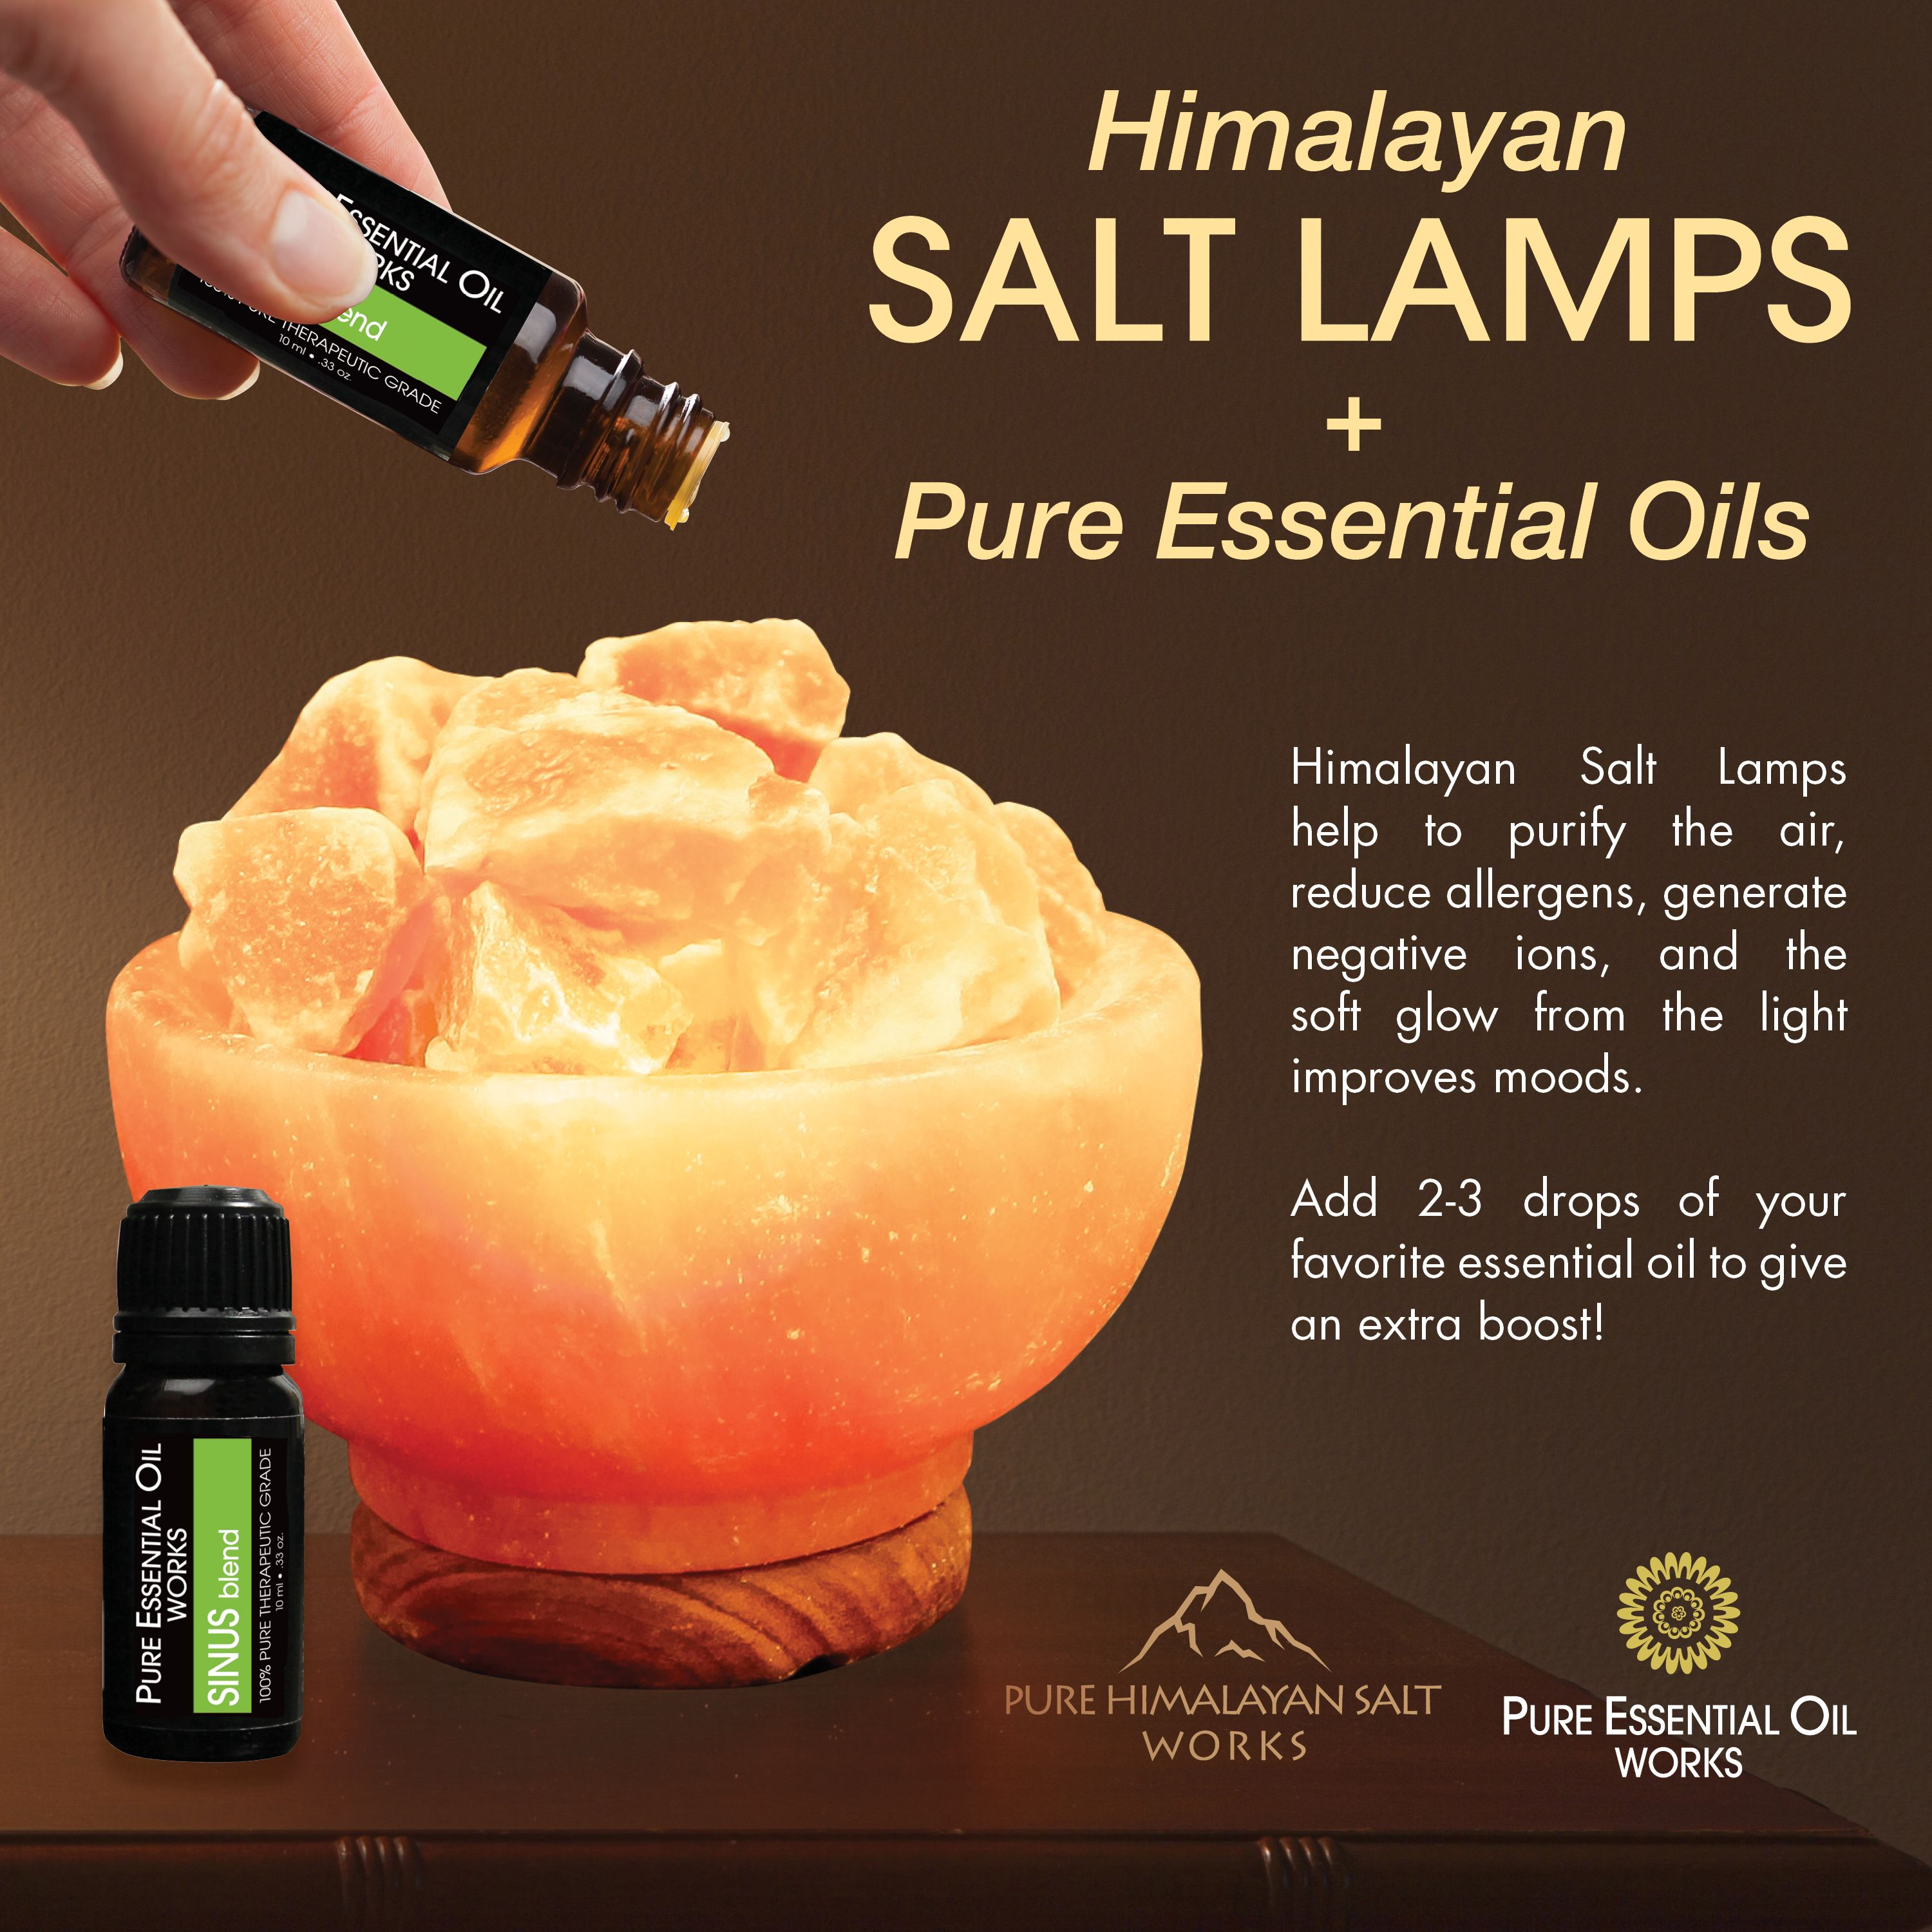 How To Enhance Your Himalayan Salt Lamp With Oils Saltlamp Essentialoils Natural Himala Himalayan Salt Lamp Benefits Himalayan Salt Lamp Salt Lamp Benefits